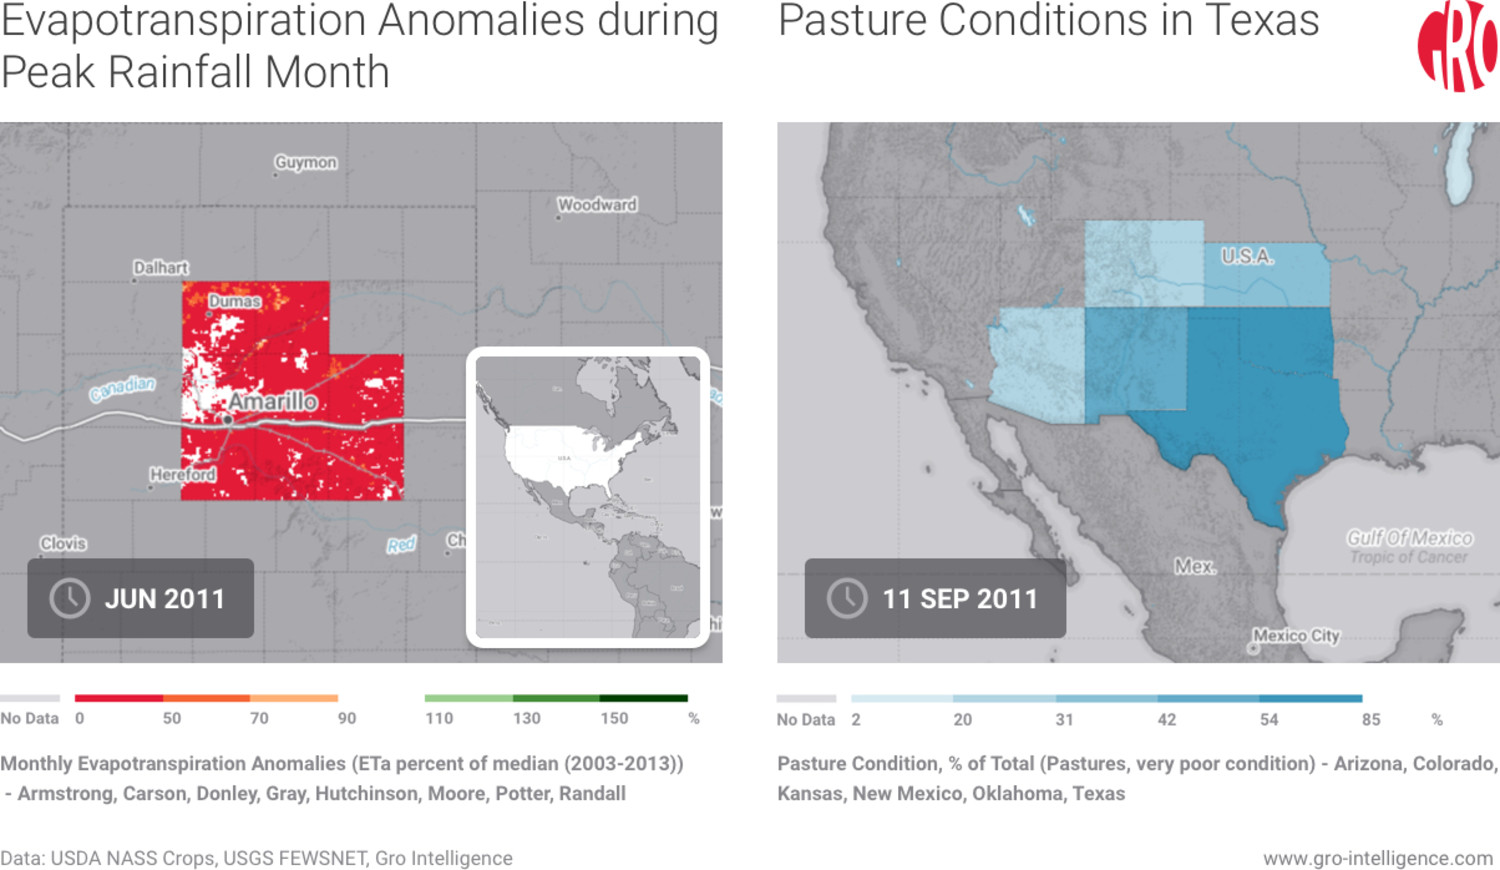 Texas, Texas dry conditions, cattle, Texas cattle, Texas drought